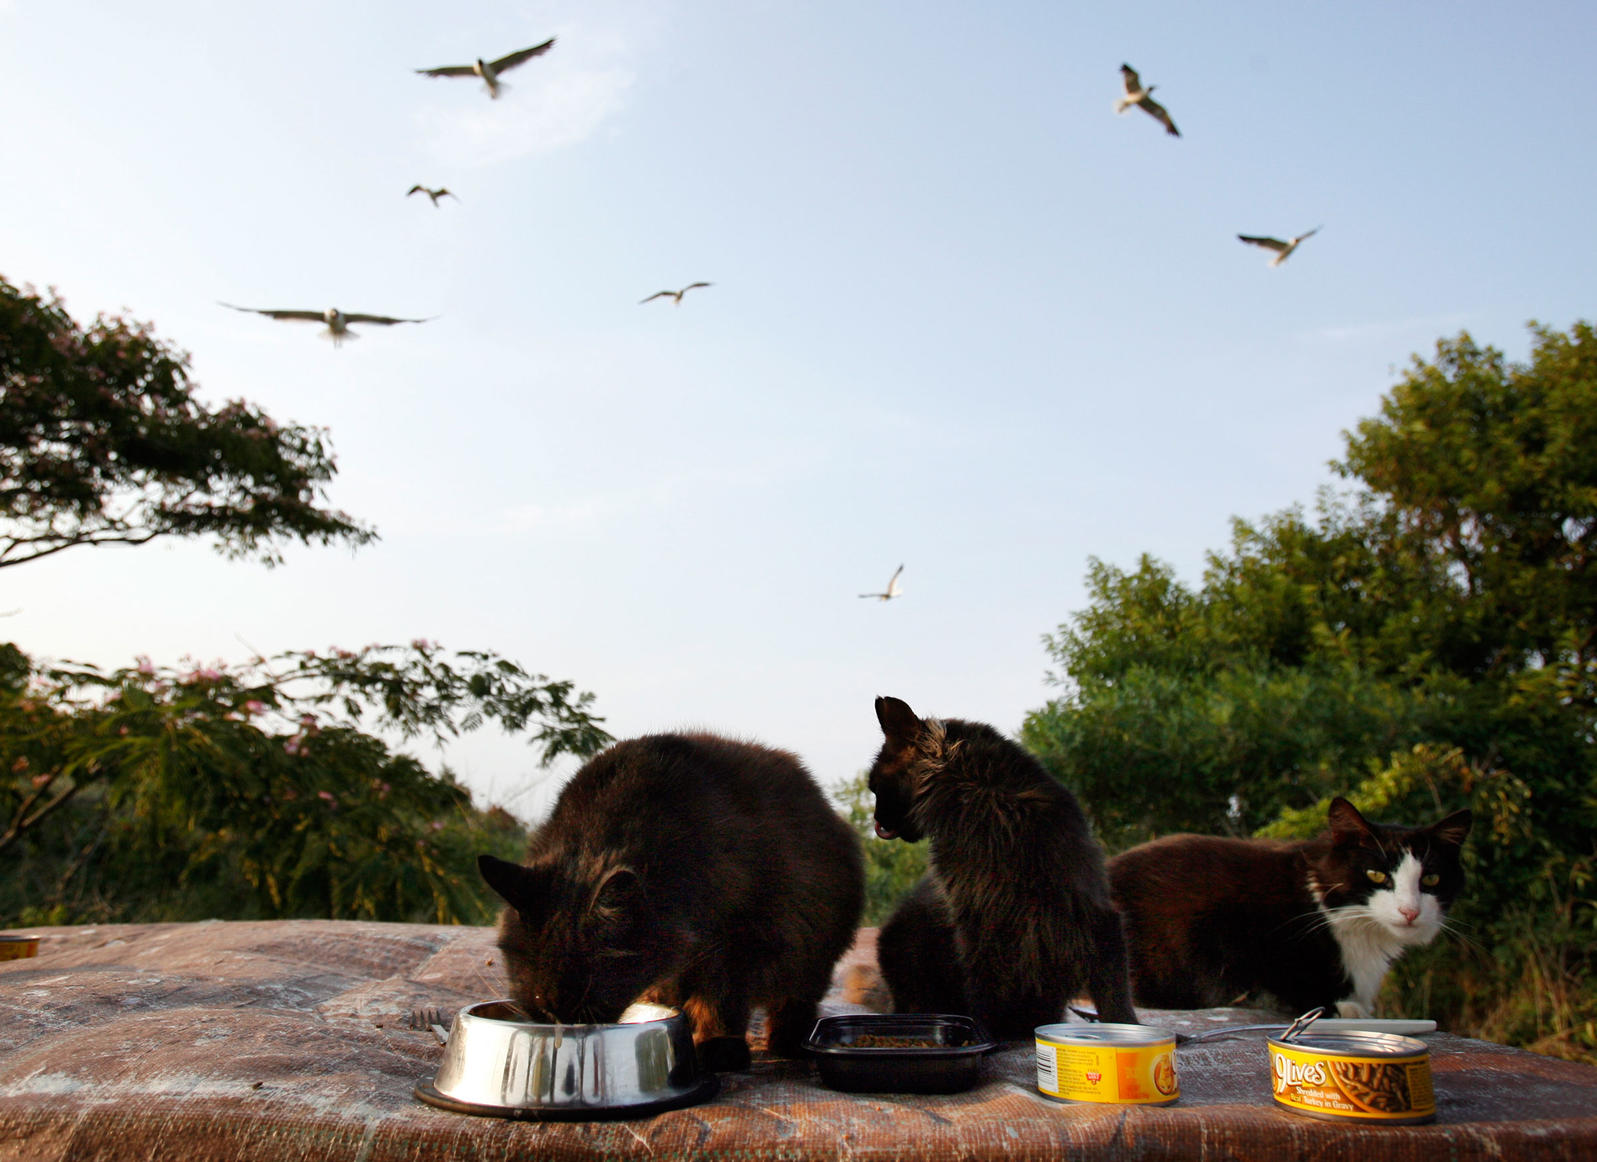 At Douglas Memorial Park in Cape May, N.J., feral cats eat food put out for them by volunteers. The cats eat Piping Plovers, which are a threatened and protected species in the area. David Gard/AP